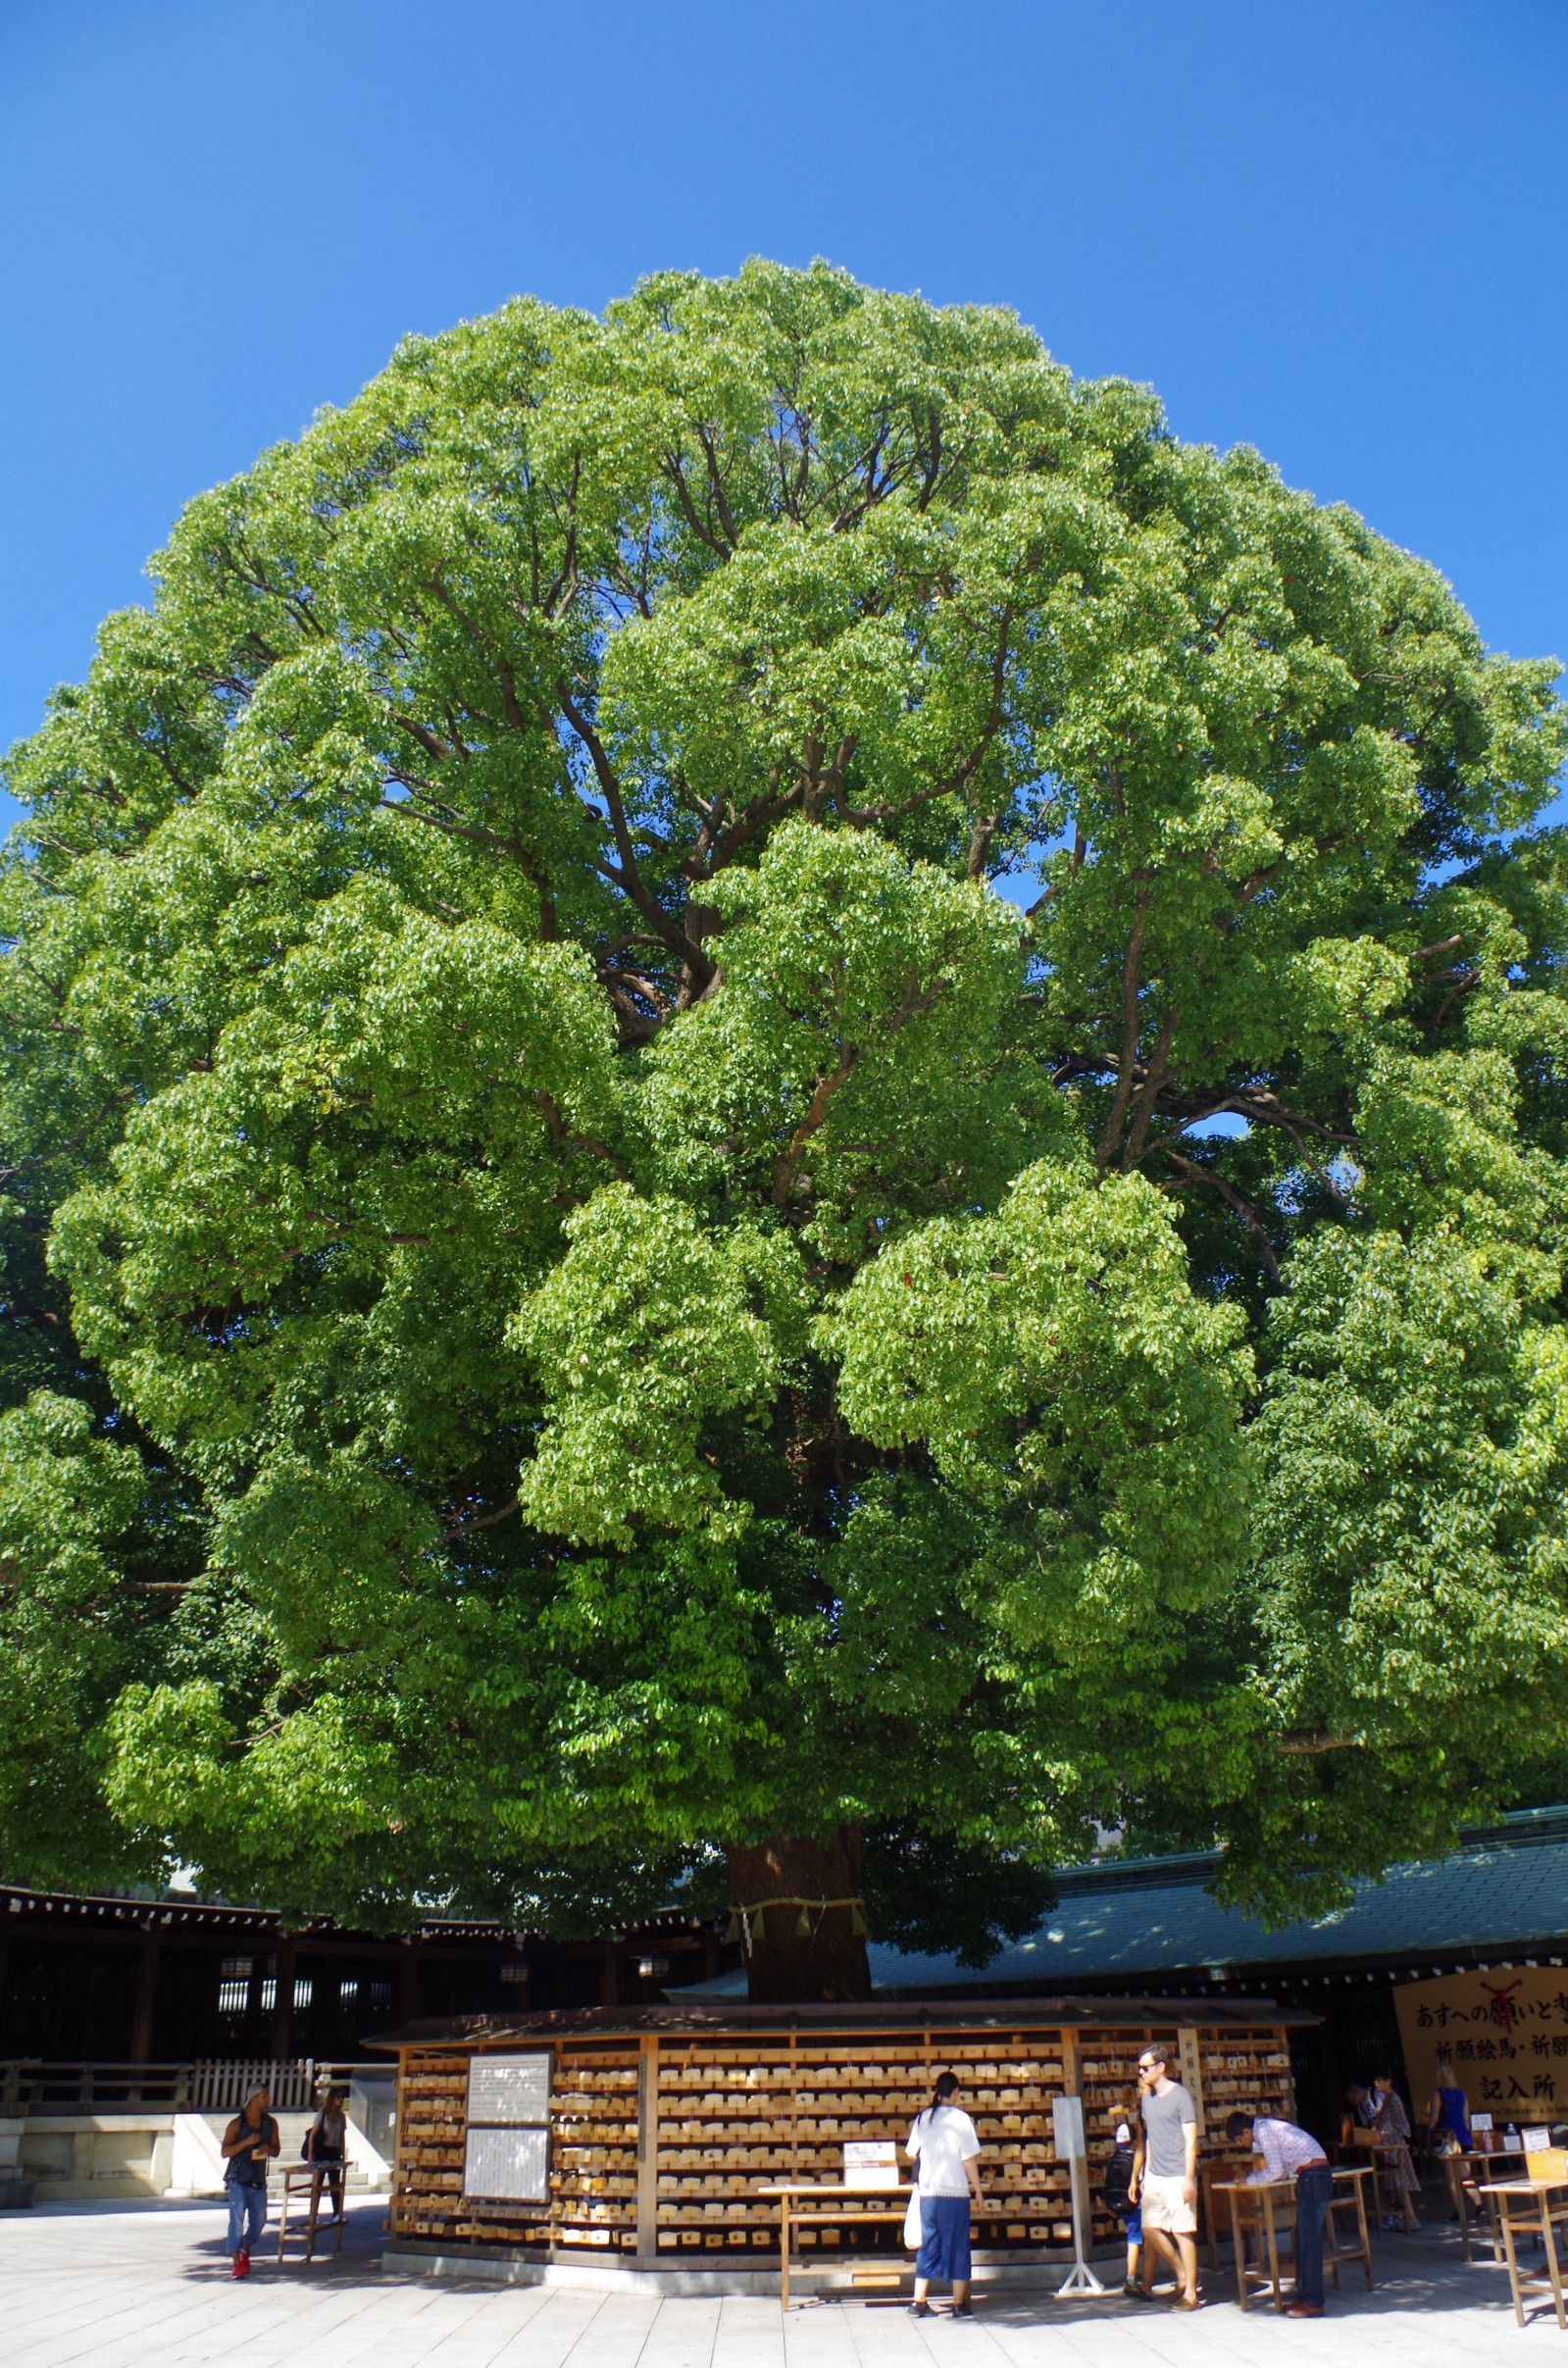 Gigantic tree at Meiji Shrine